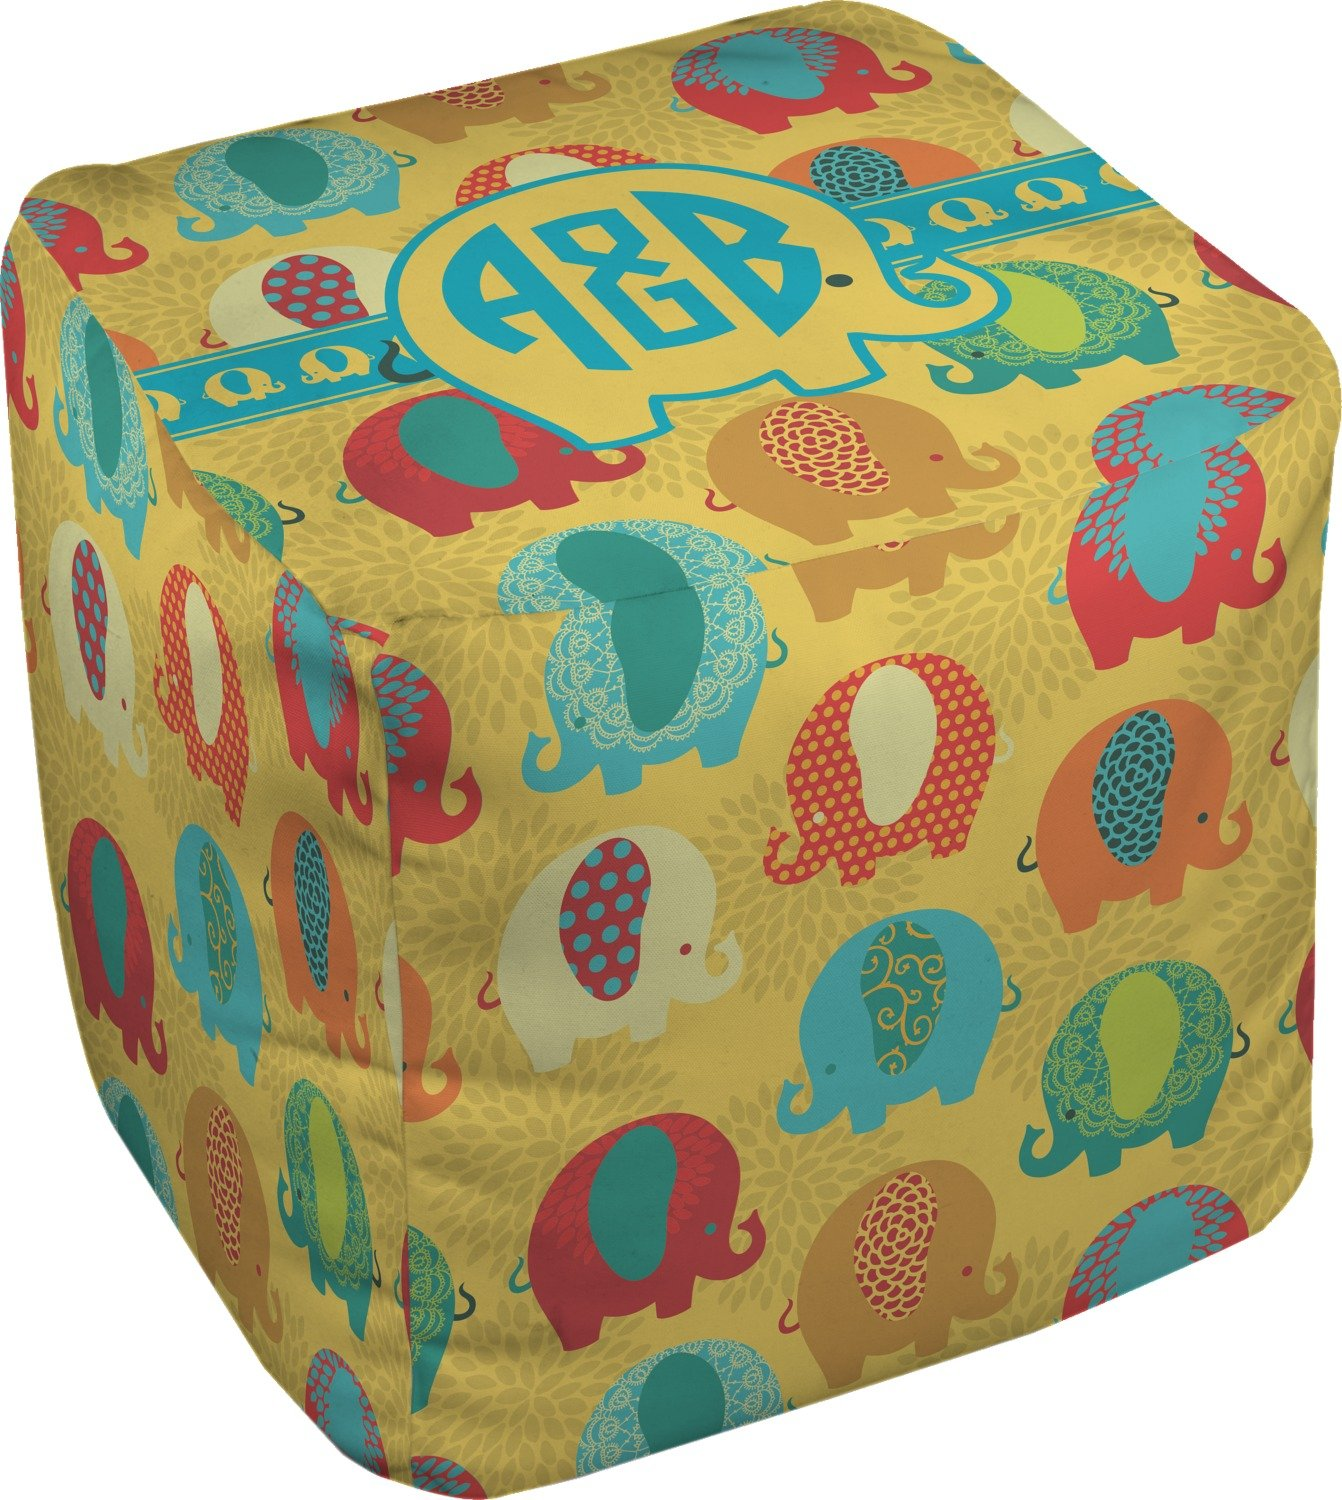 RNK Shops Cute Elephants Cube Pouf Ottoman - 13'' (Personalized)